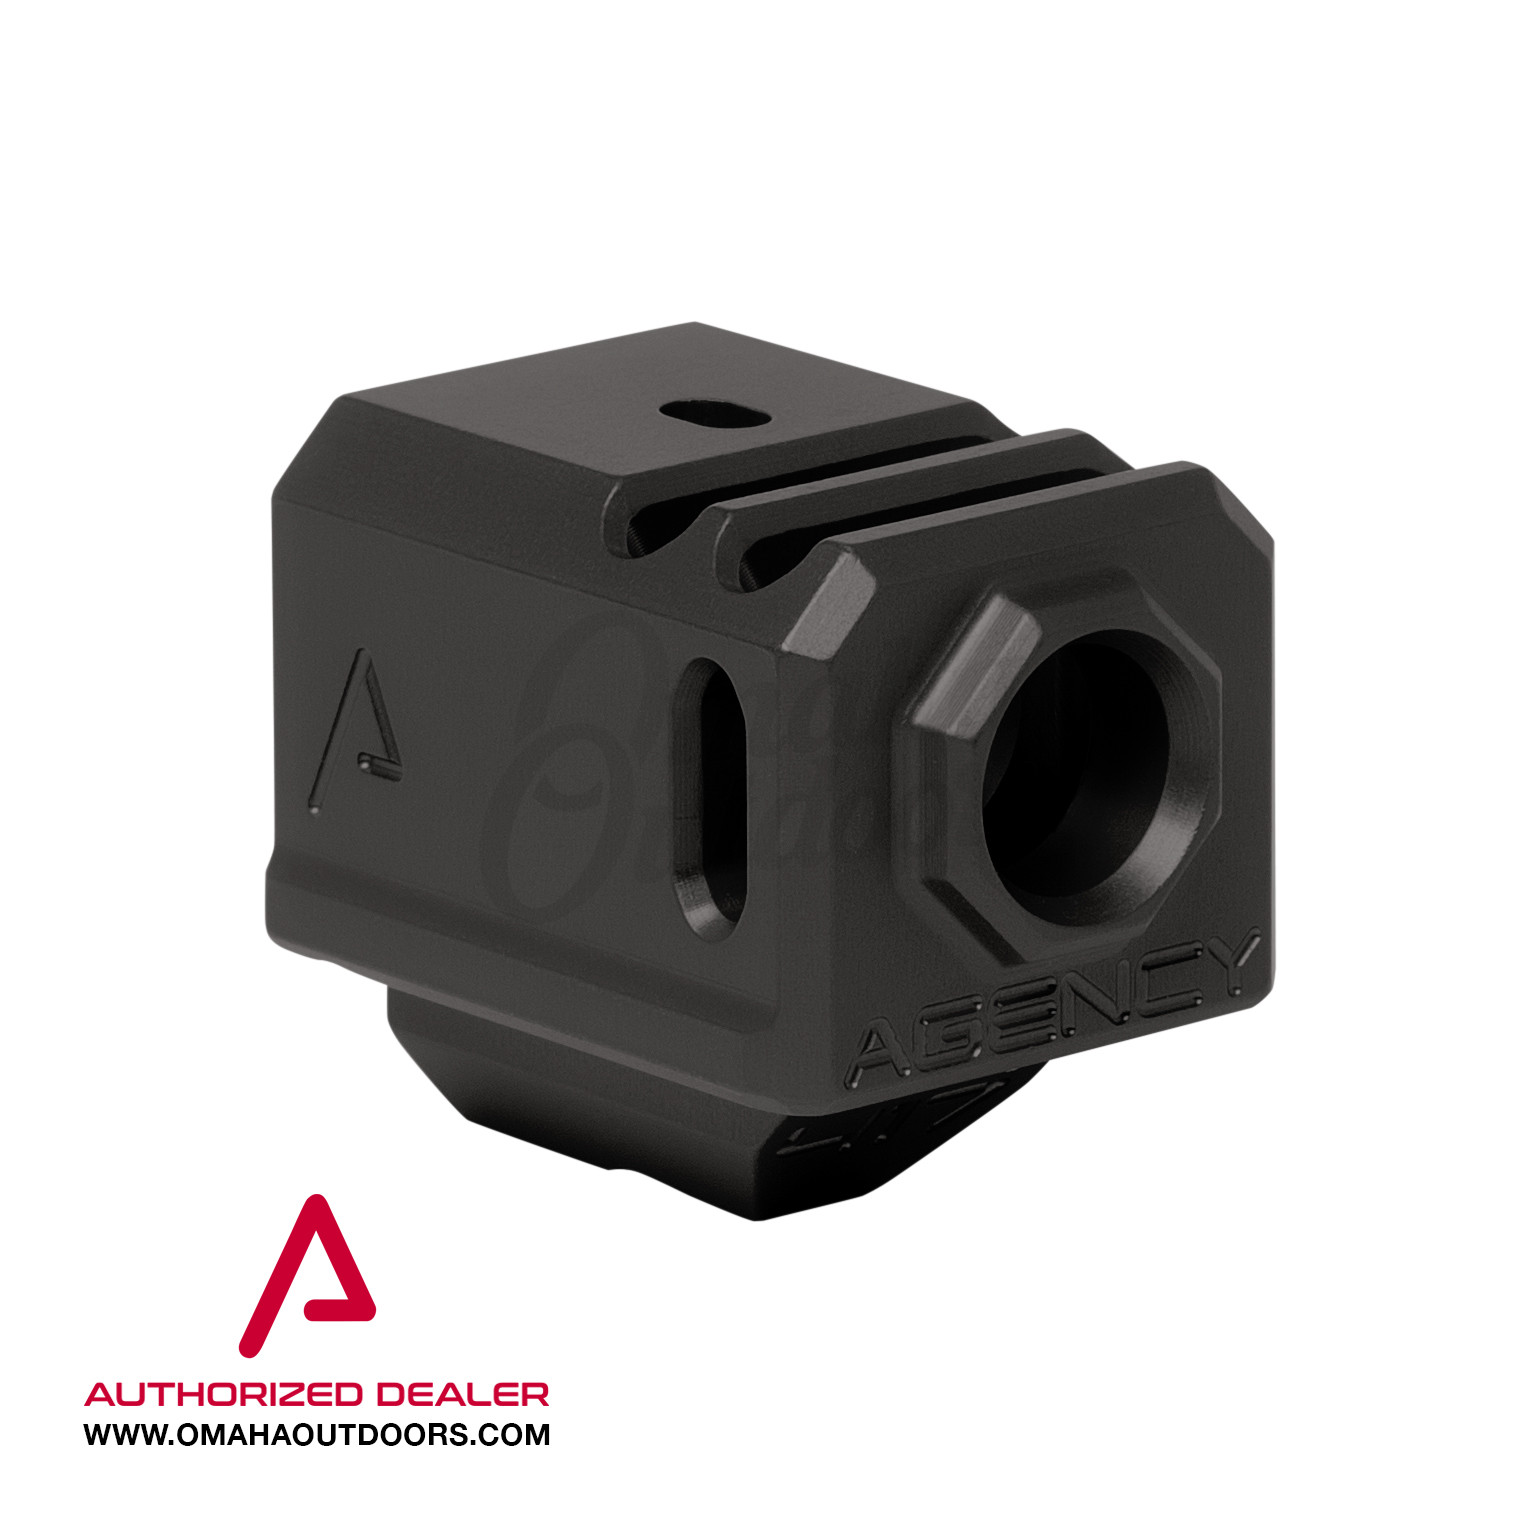 Agency Arms 417 Dual Port Compensator Glock 17 19 34 Gen 3 9mm 1/2